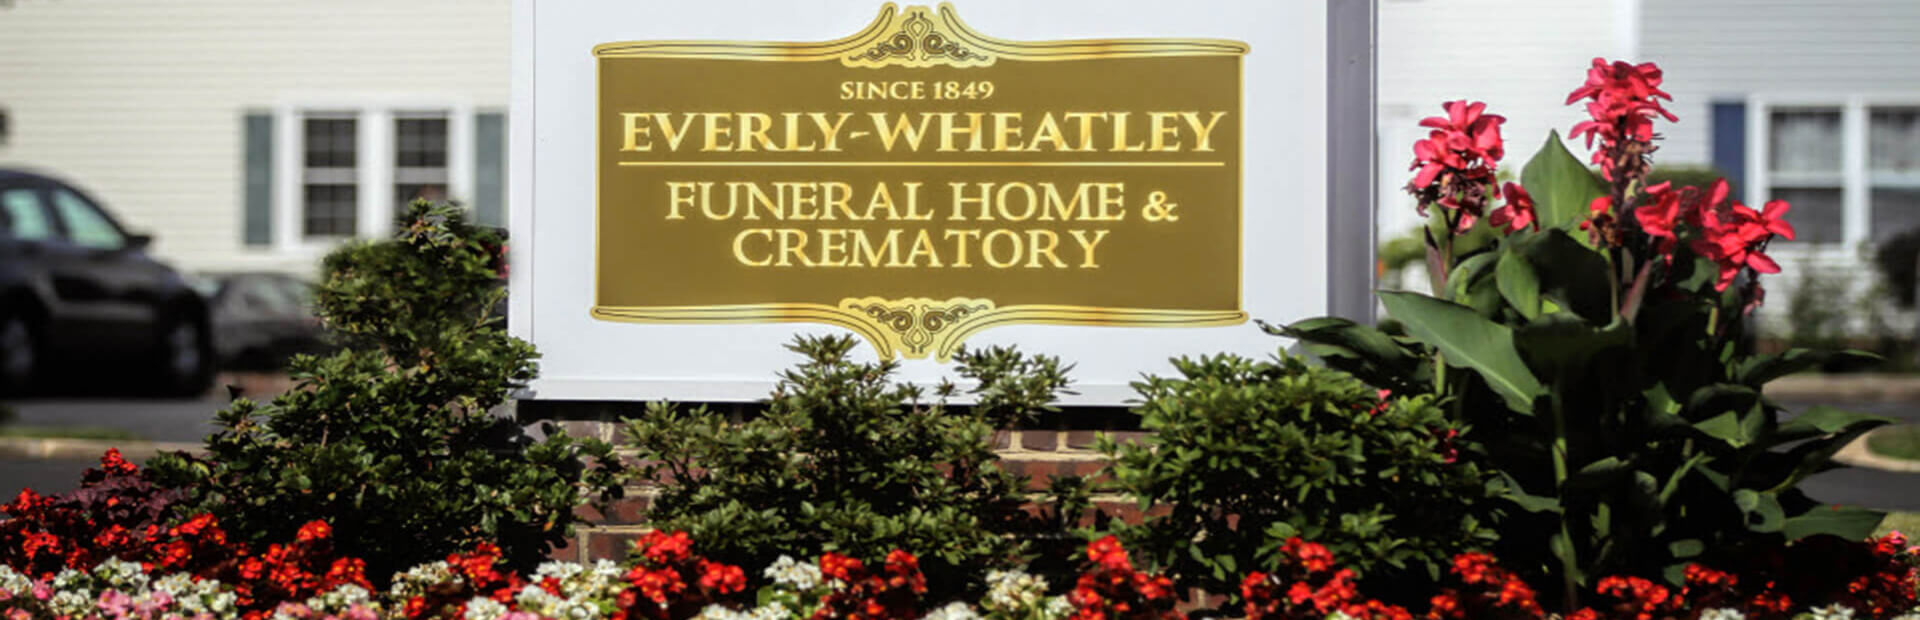 Everly Wheatley Funeral Home in Alexandria, VA